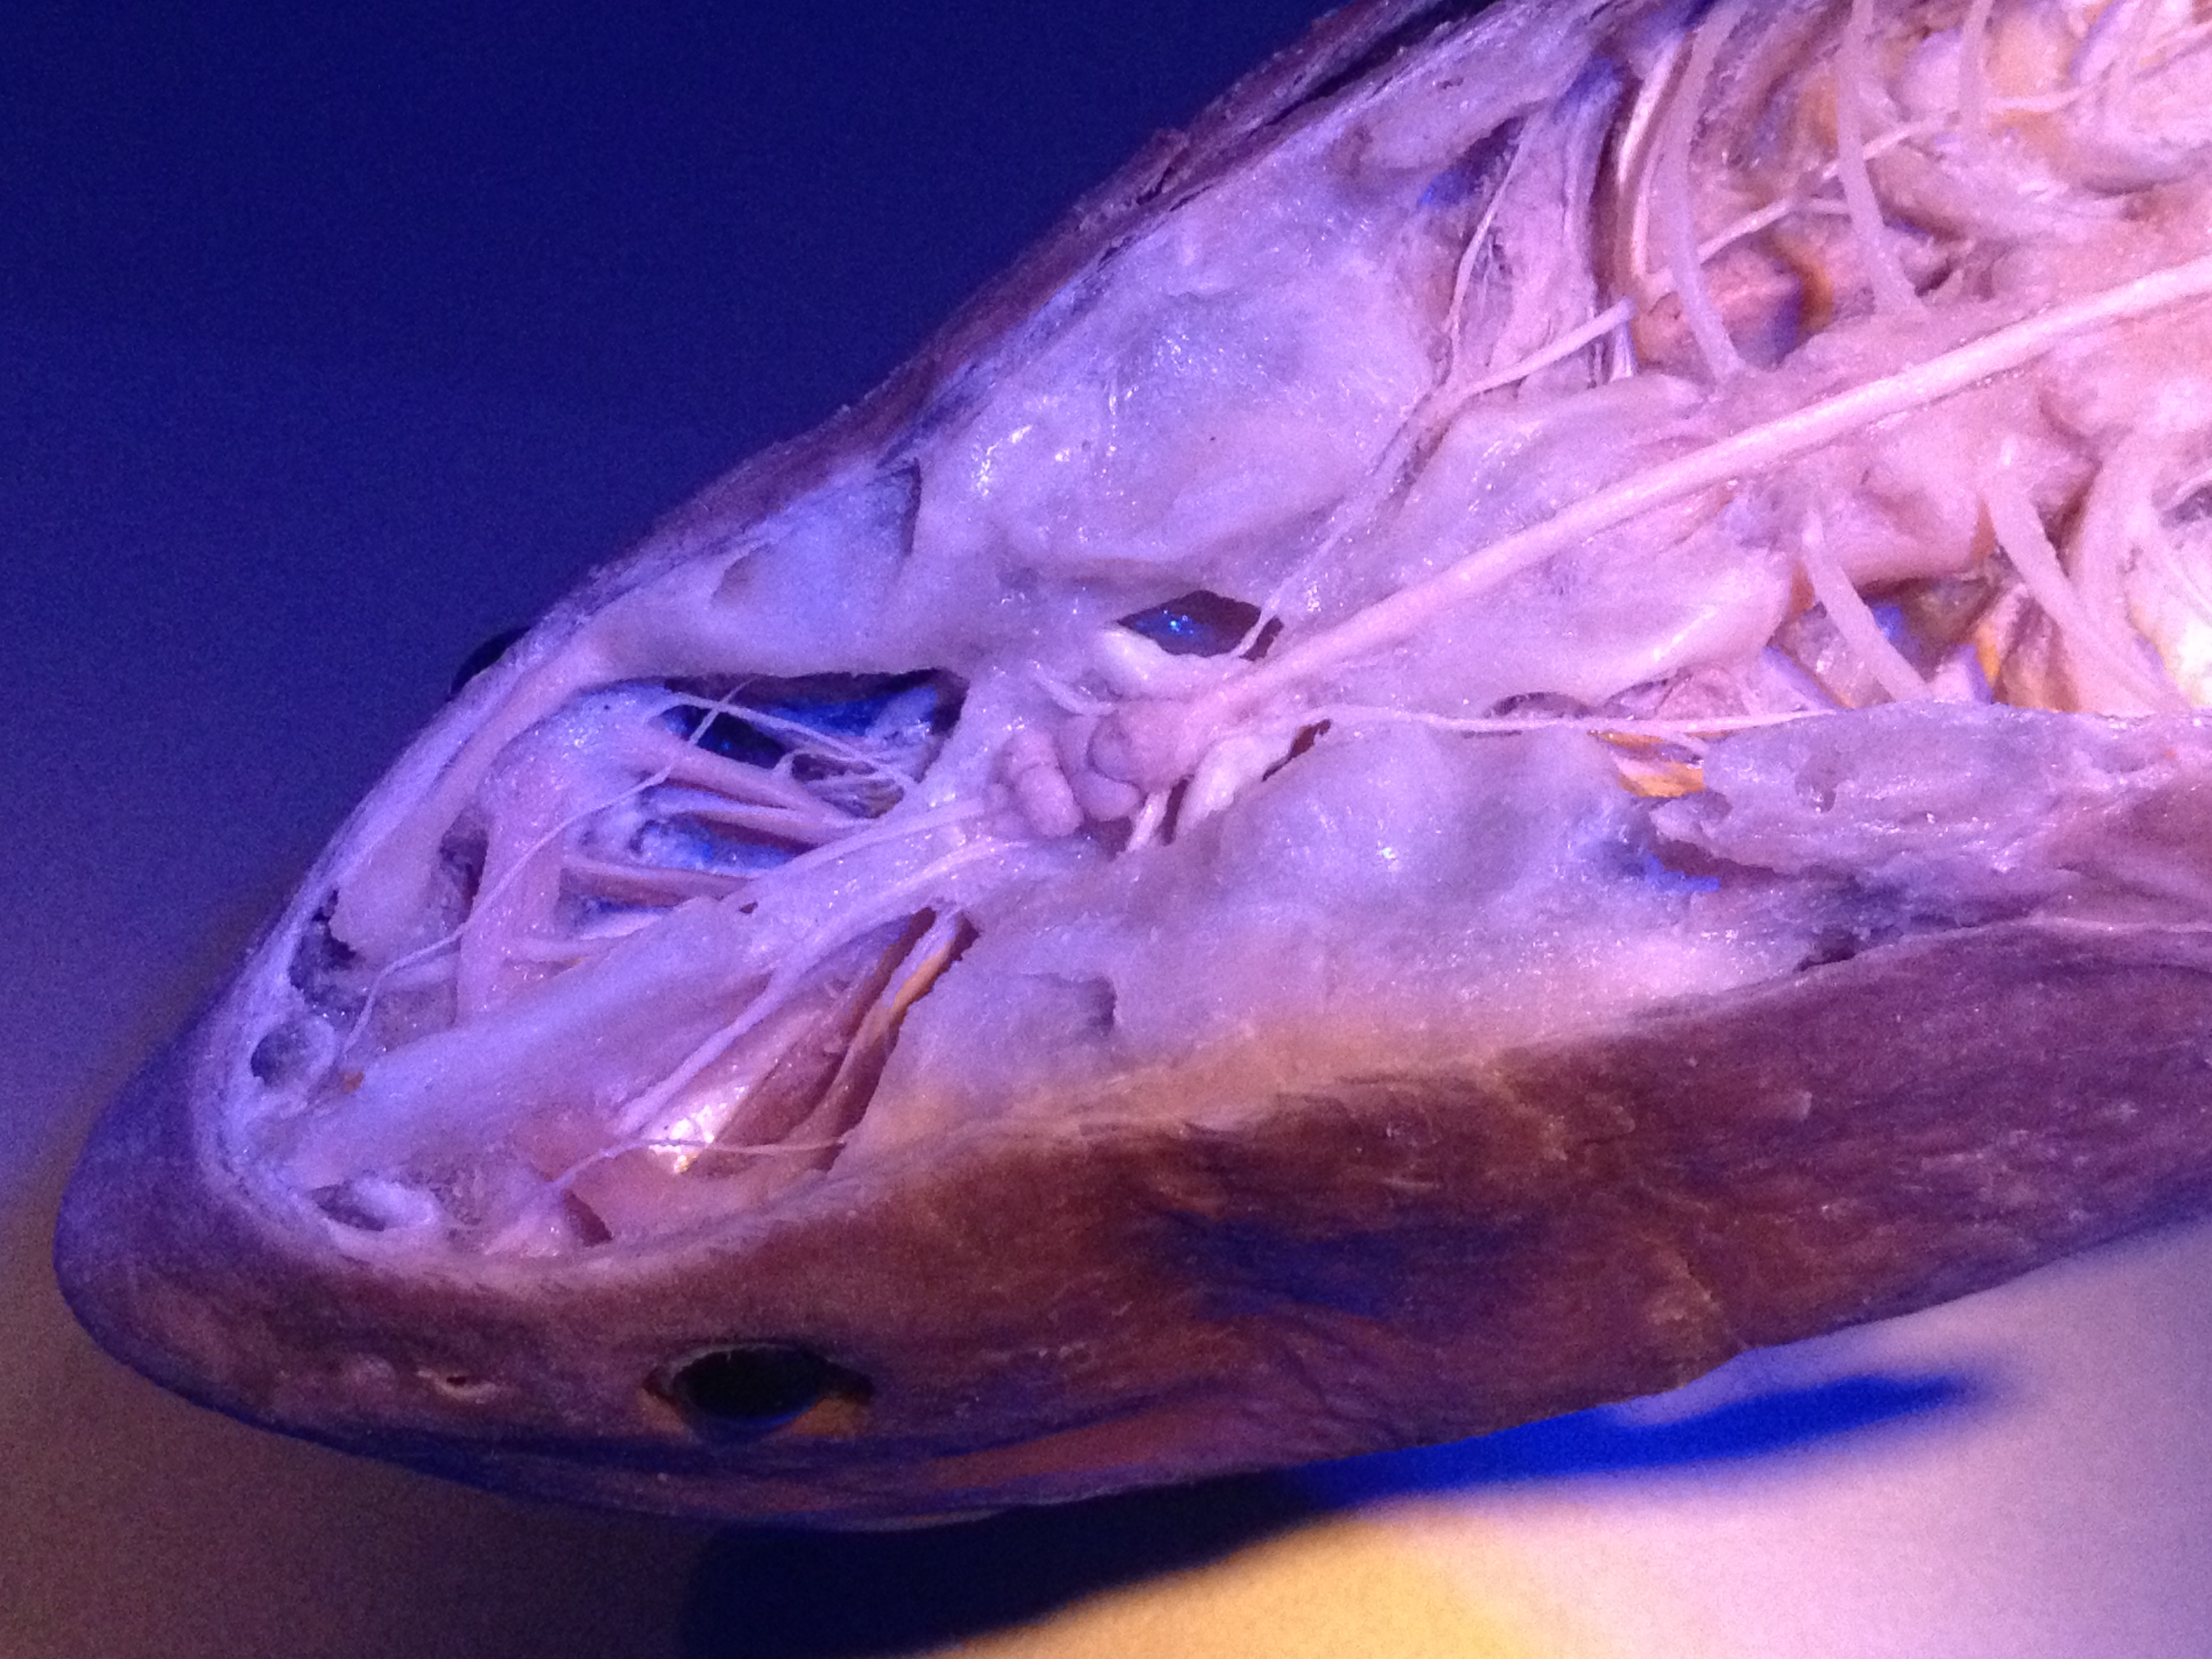 Shark Brain and Nerves